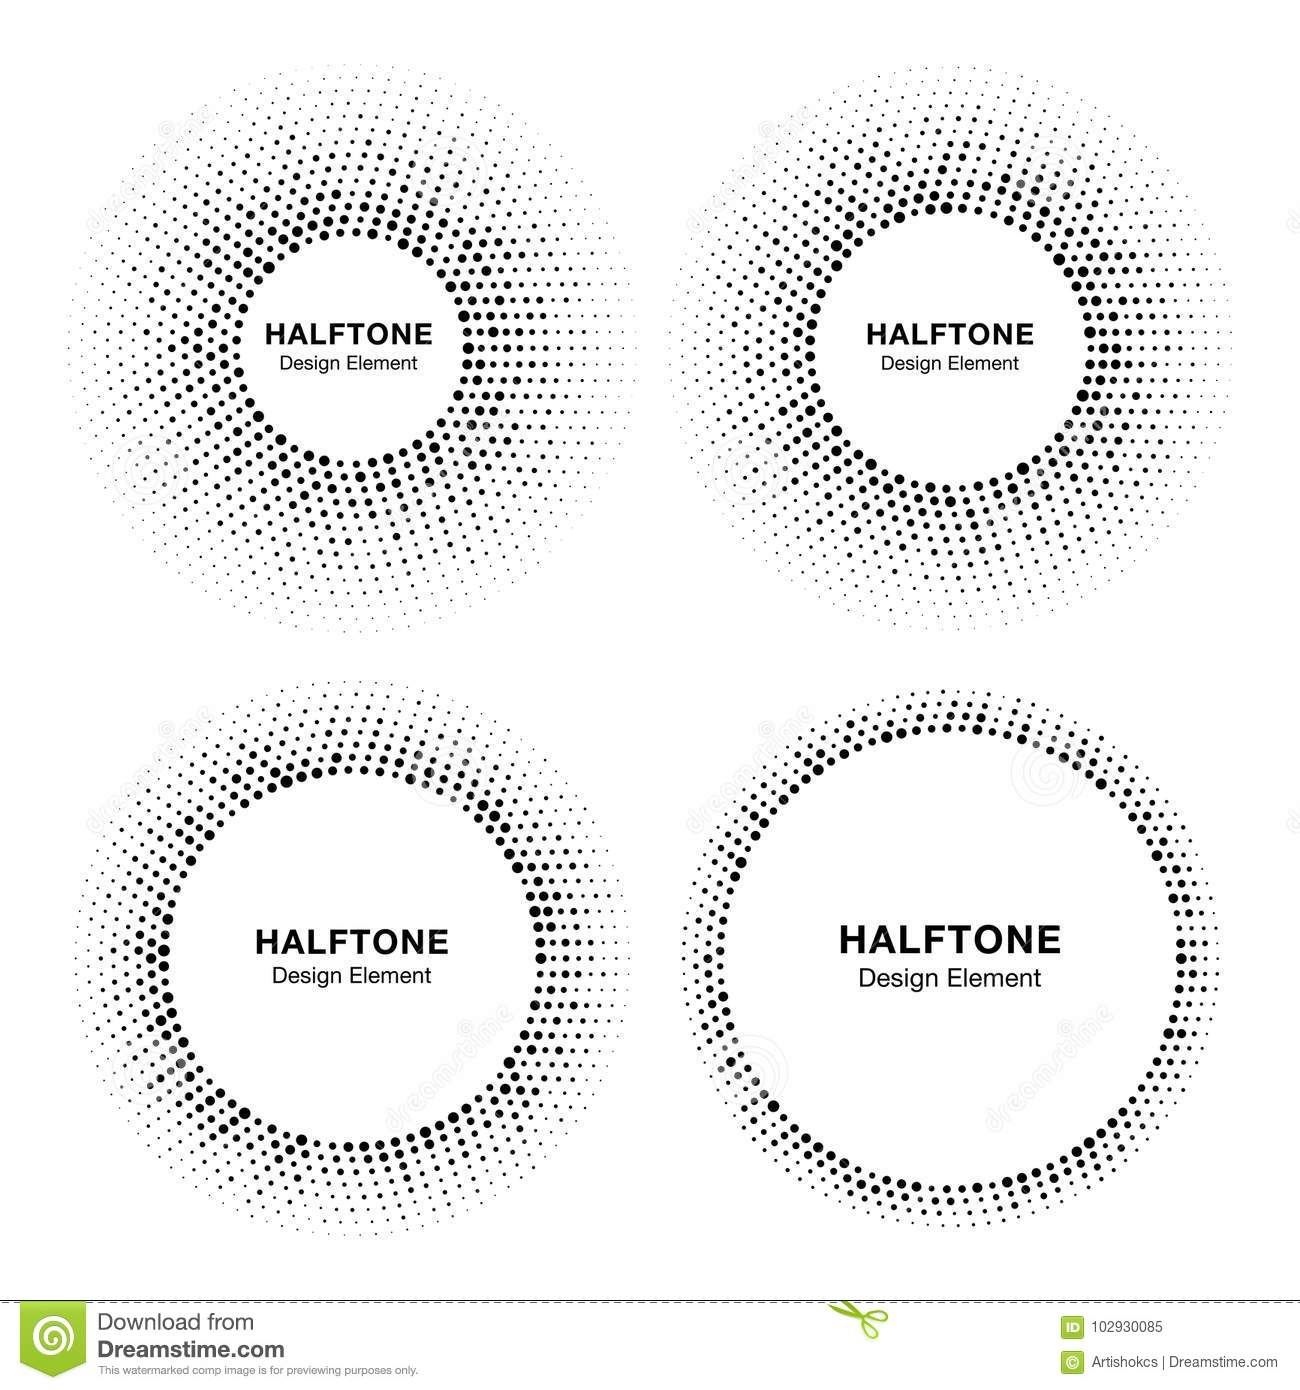 Set of Halftone circle vector frames with black abstract random dots, logo emblem design element for technology, medical